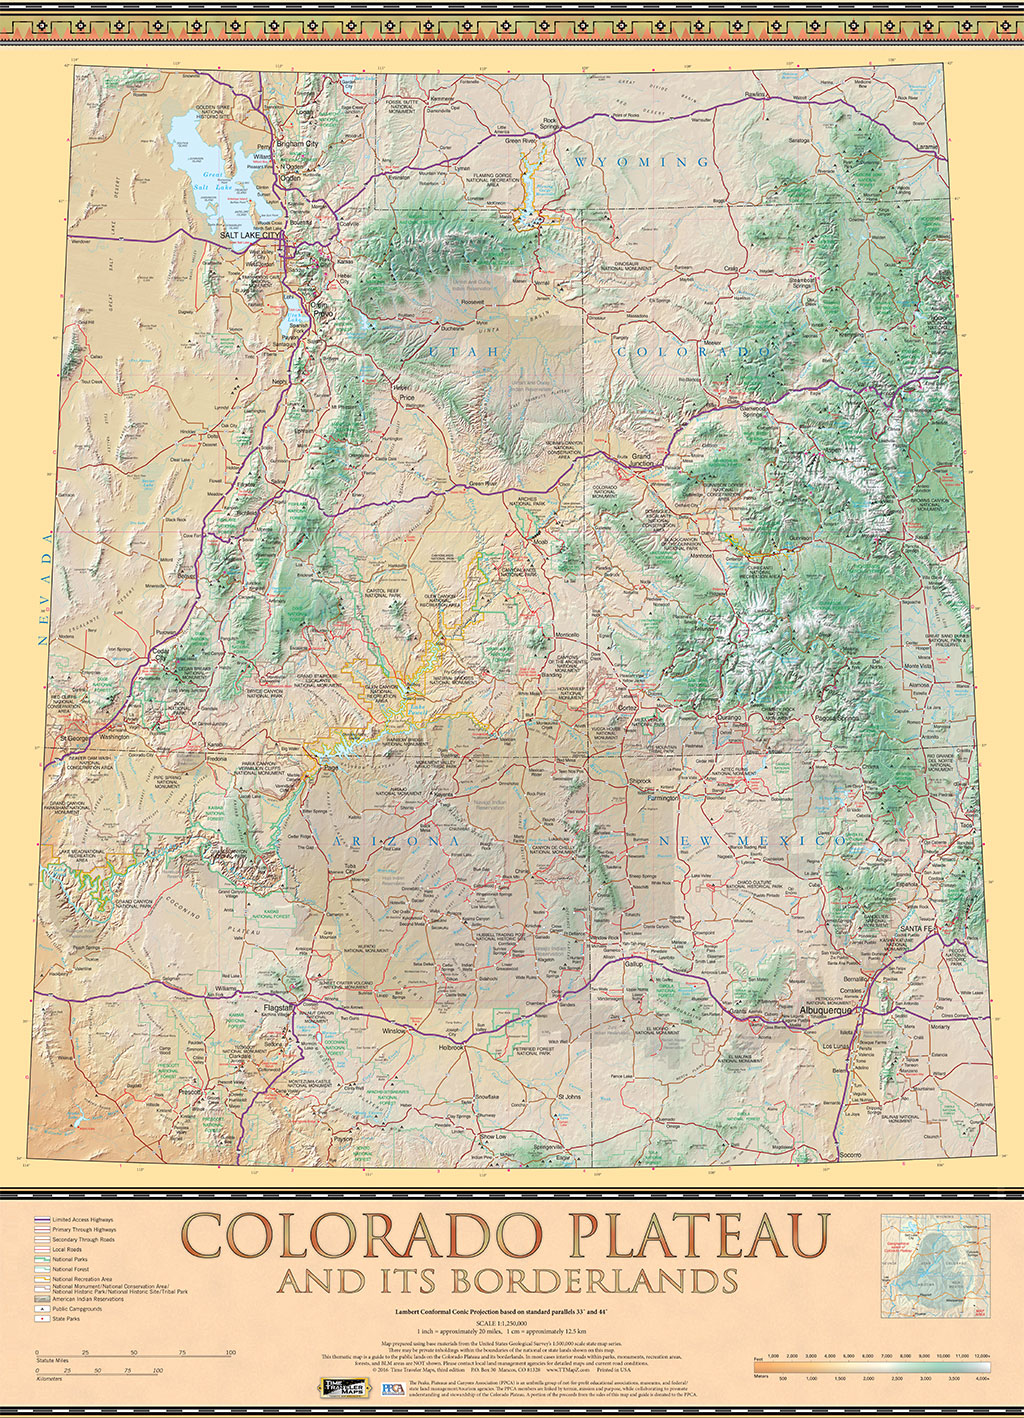 The colorado plateau map guide to public lands on the colorado the colorado plateau map guide to public lands on the colorado plateau its borderlands time traveler mapstime traveler maps publicscrutiny Images